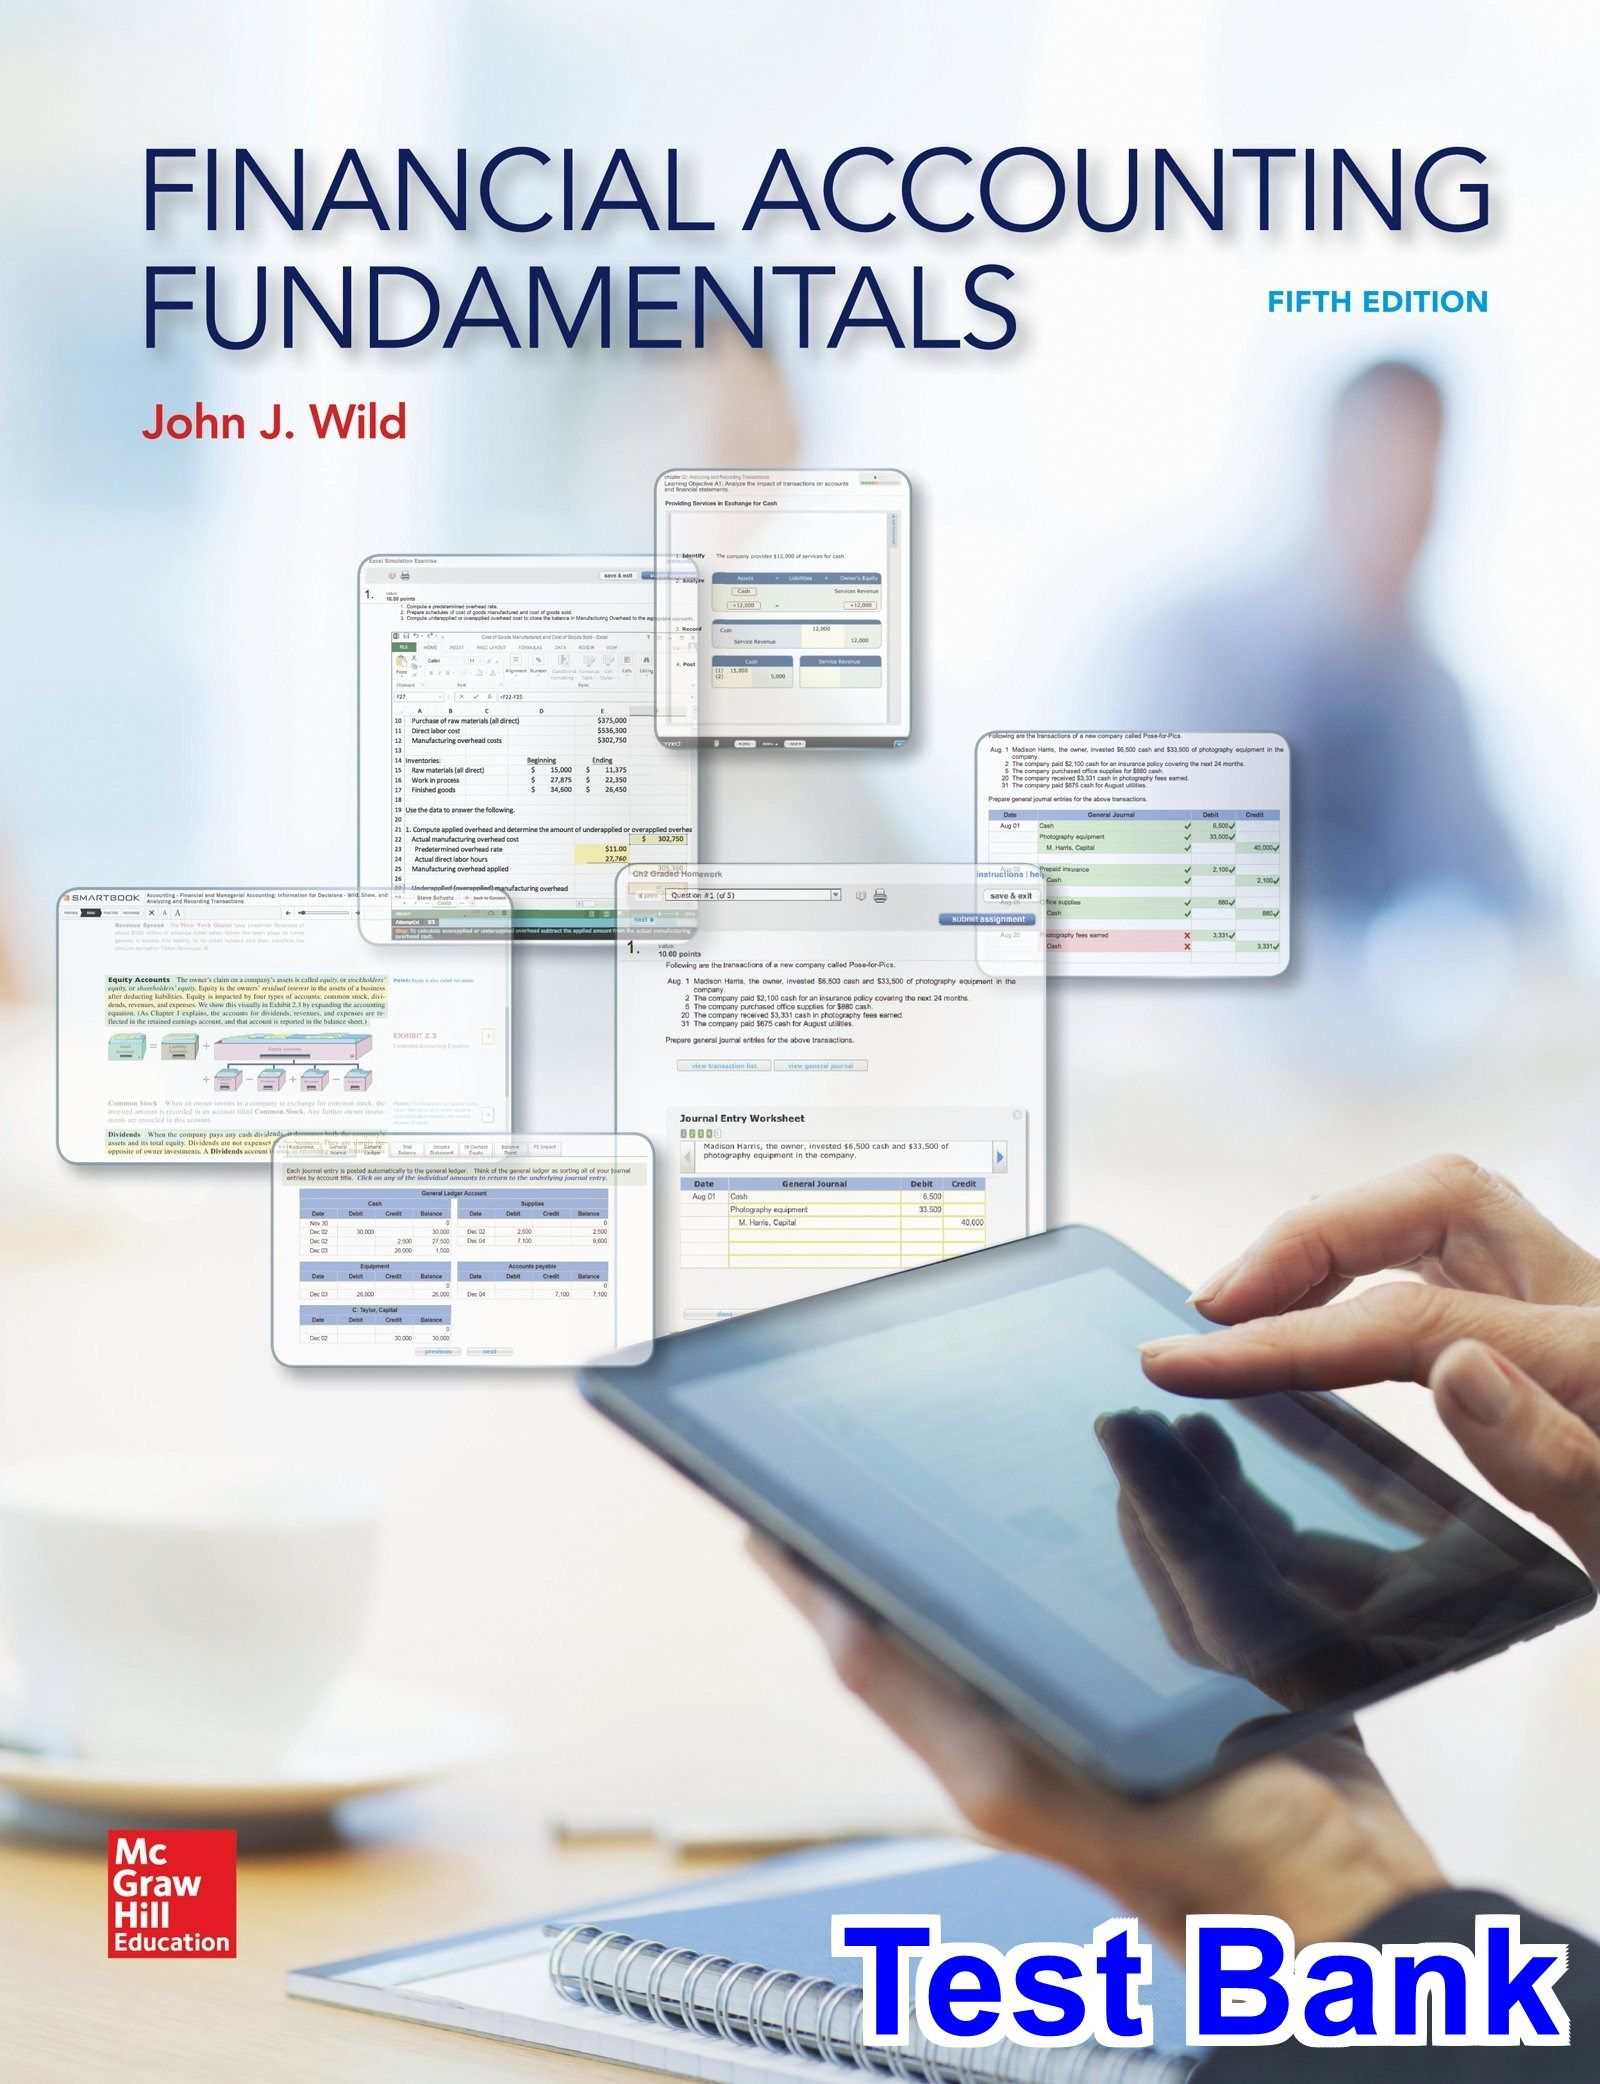 Financial accounting fundamentals 5th edition wild test bank test financial accounting fundamentals 5th edition wild test bank test bank solutions manual exam fandeluxe Images